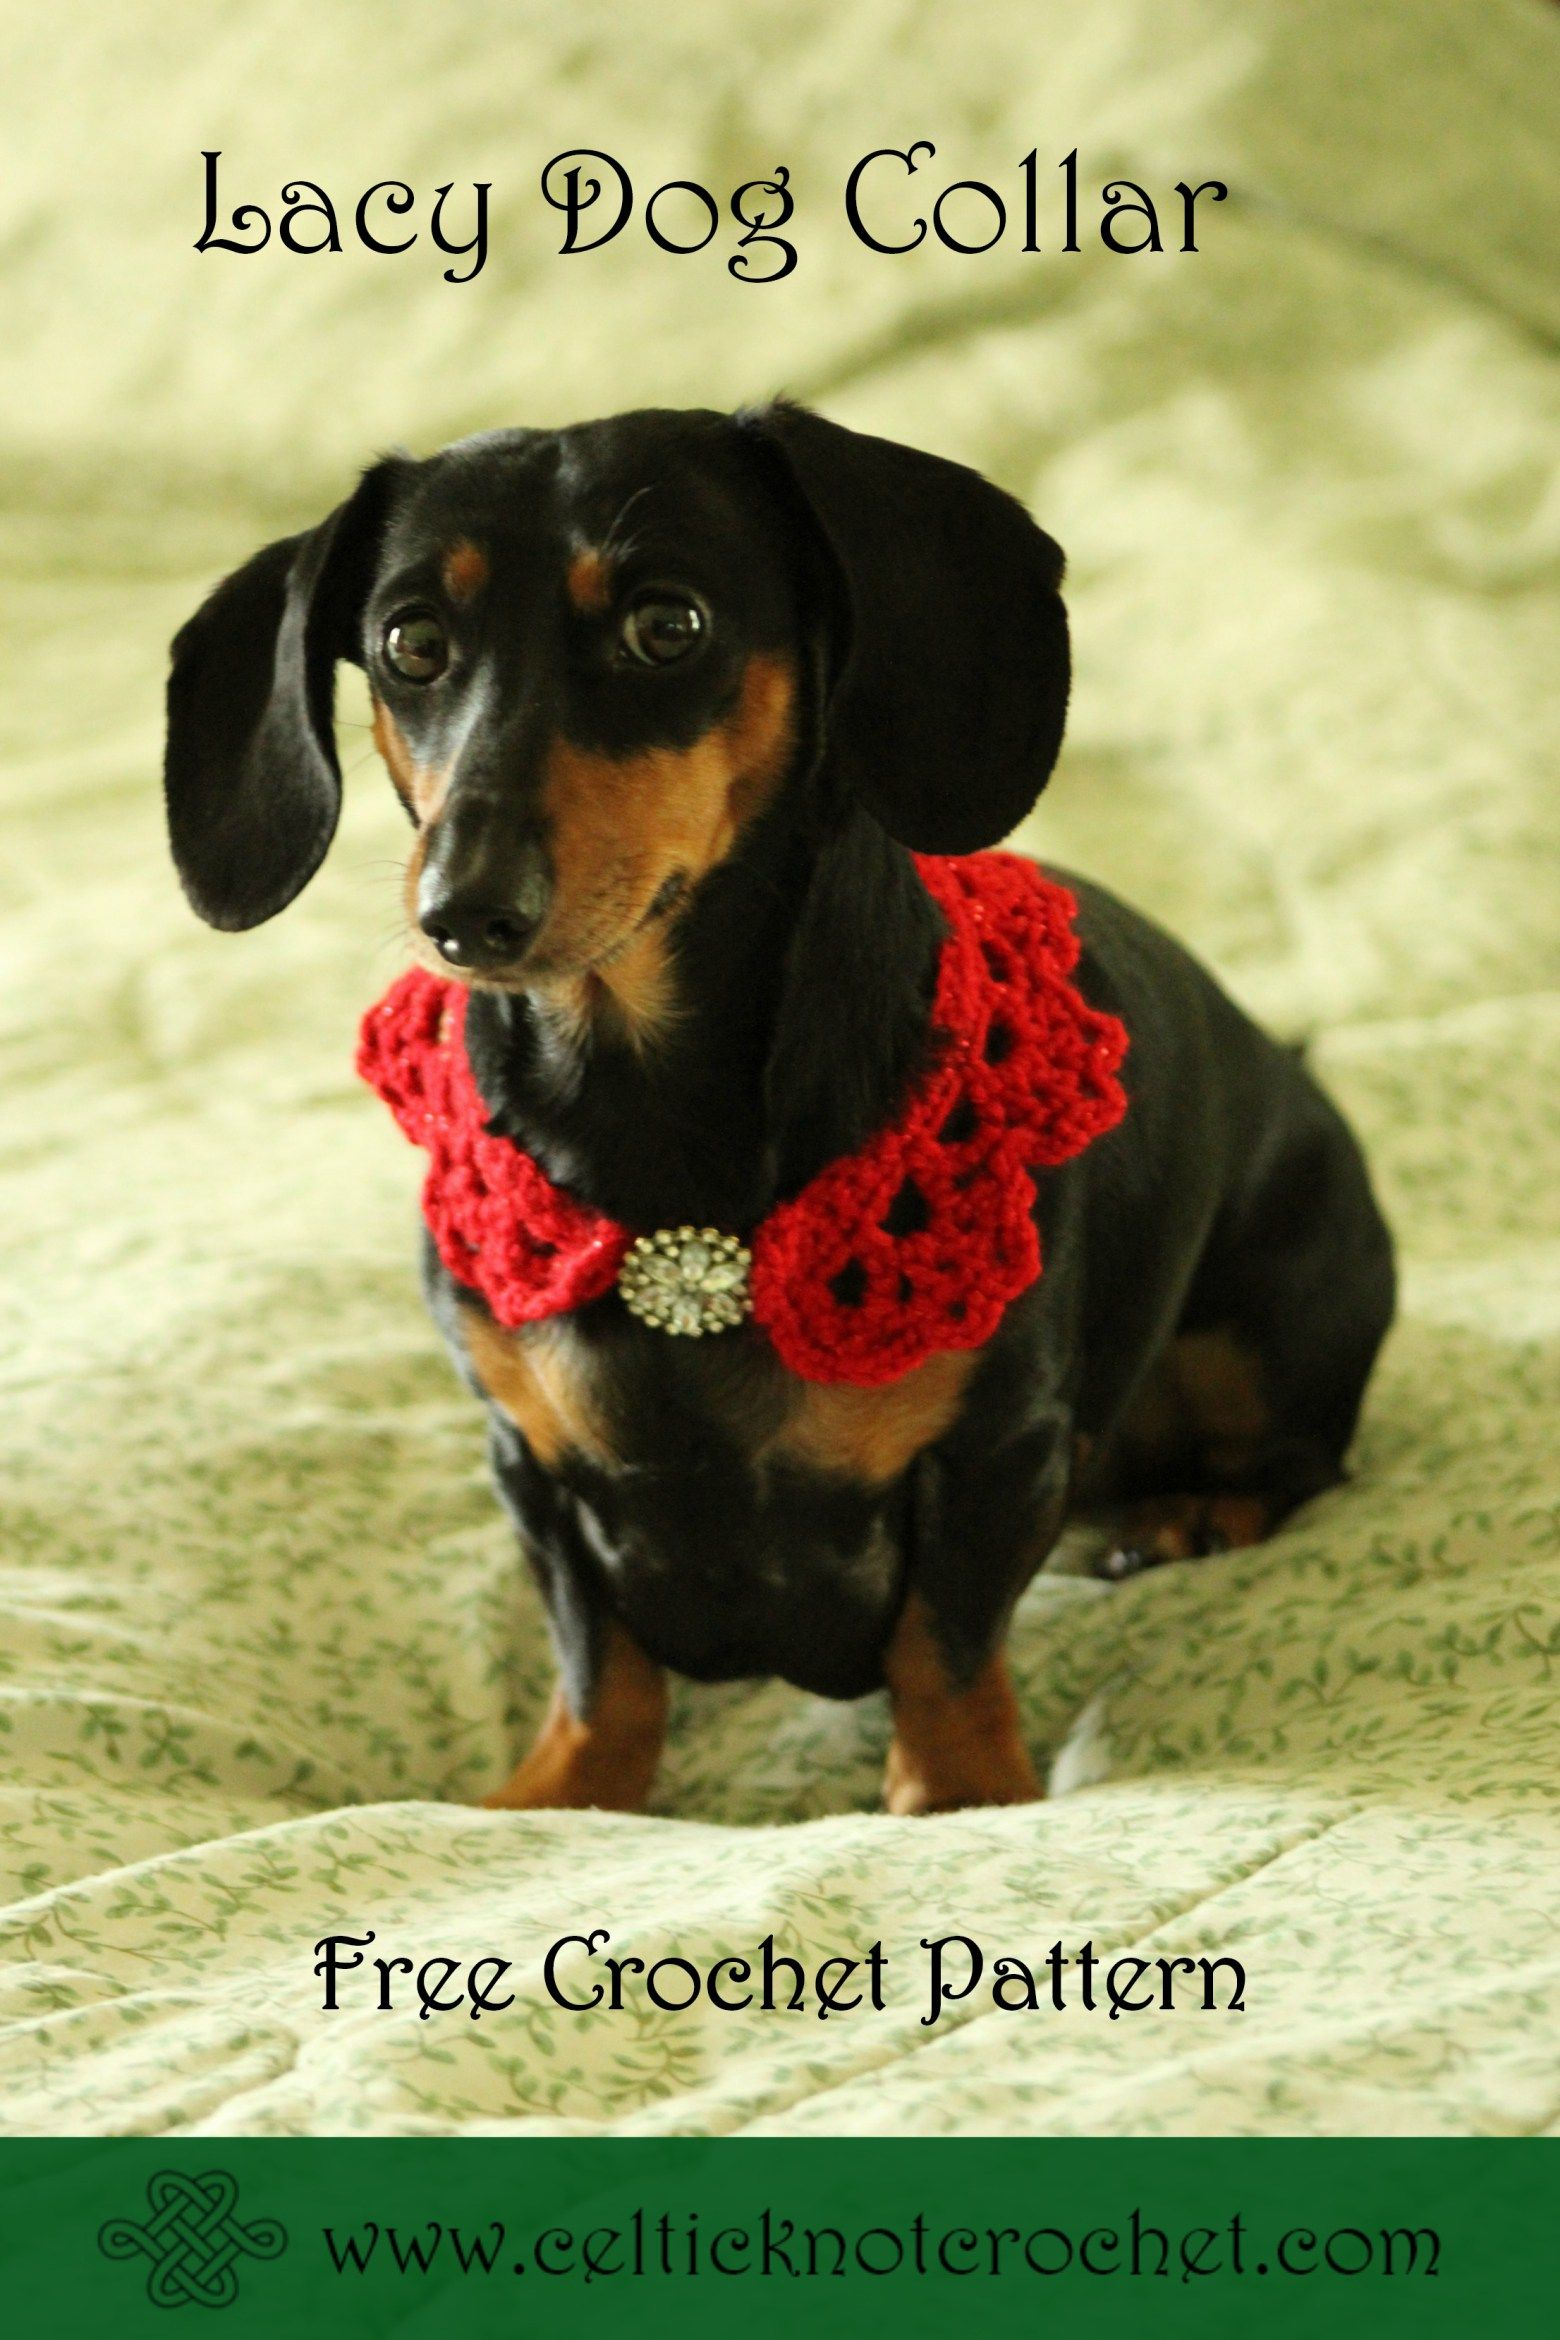 Lacy Dog Collar free crochet pattern - Celtic Knot Crochet ...